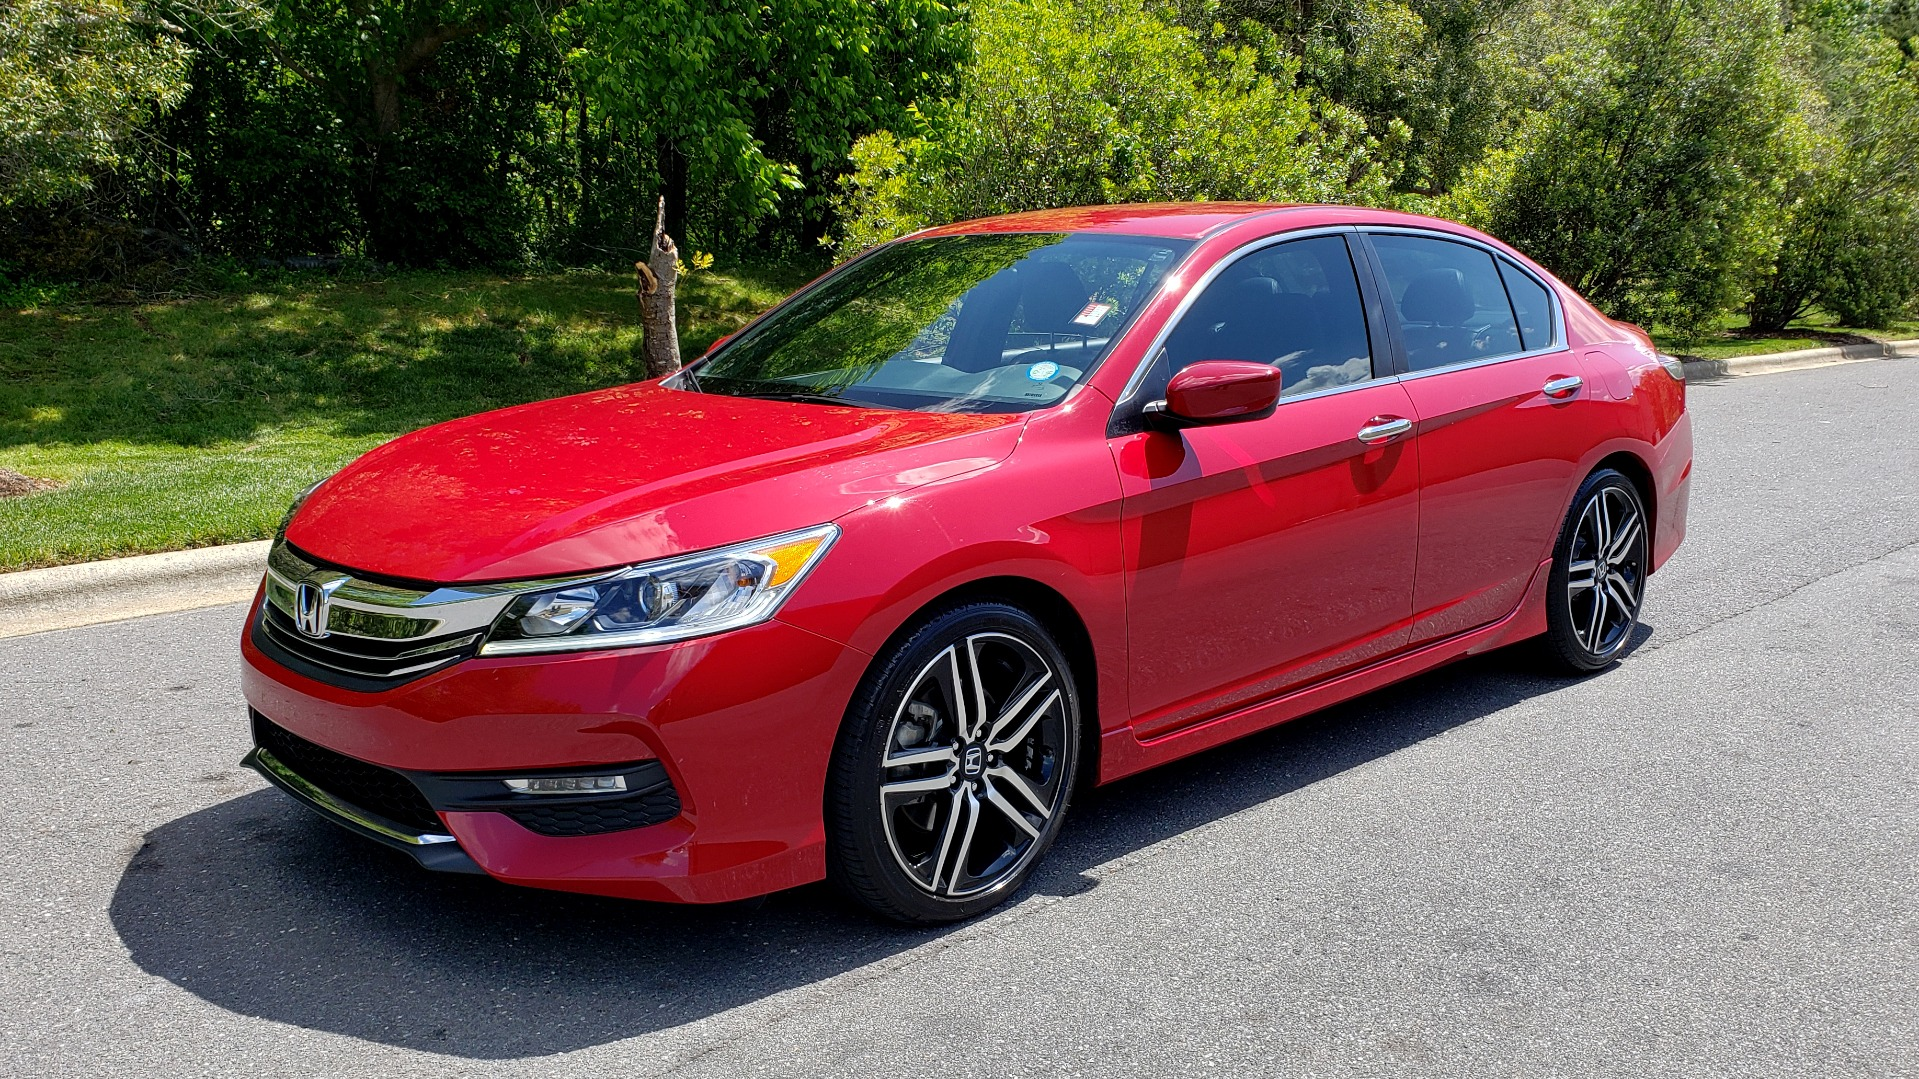 Used 2016 Honda ACCORD SEDAN SPORT / 4-CYL / CVT TRANS / SPOILER / 19IN ALLOY WHEELS for sale Sold at Formula Imports in Charlotte NC 28227 1